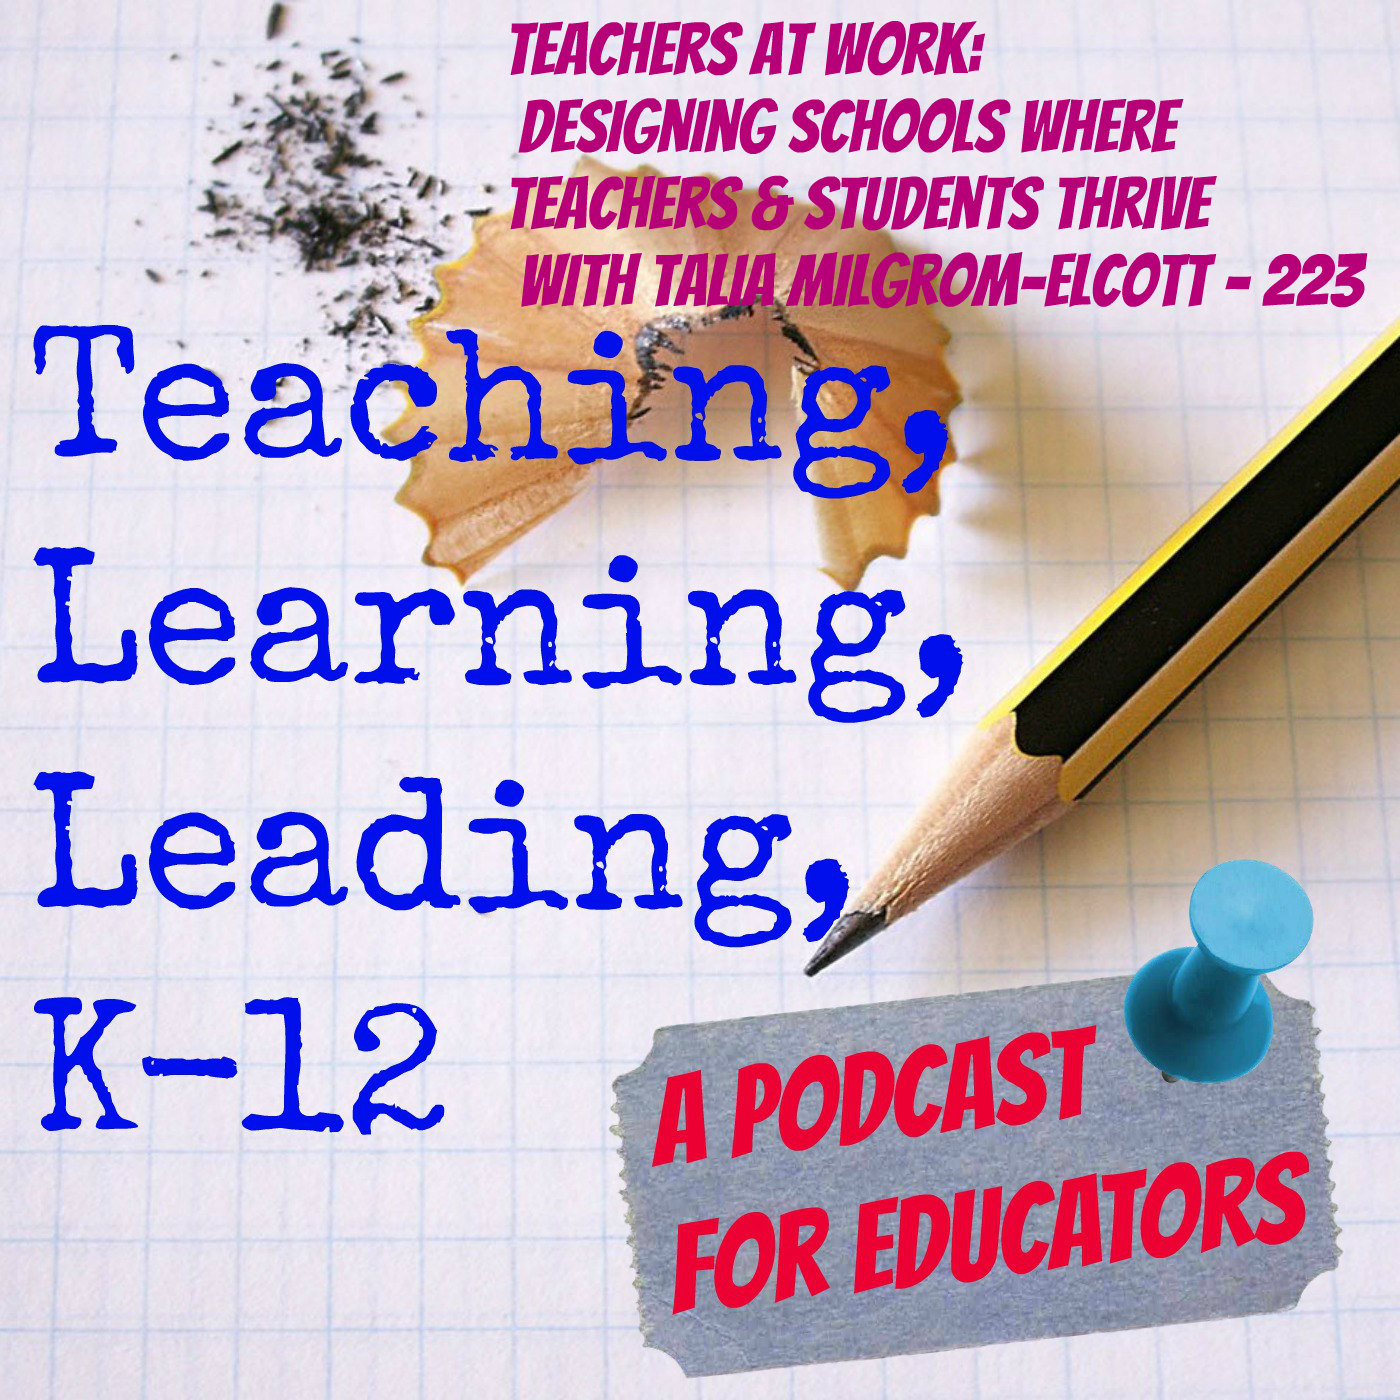 Teachers at Work: Designing Schools Where Teachers and Students Thrive with Talia Milgrom-Elcott - 223